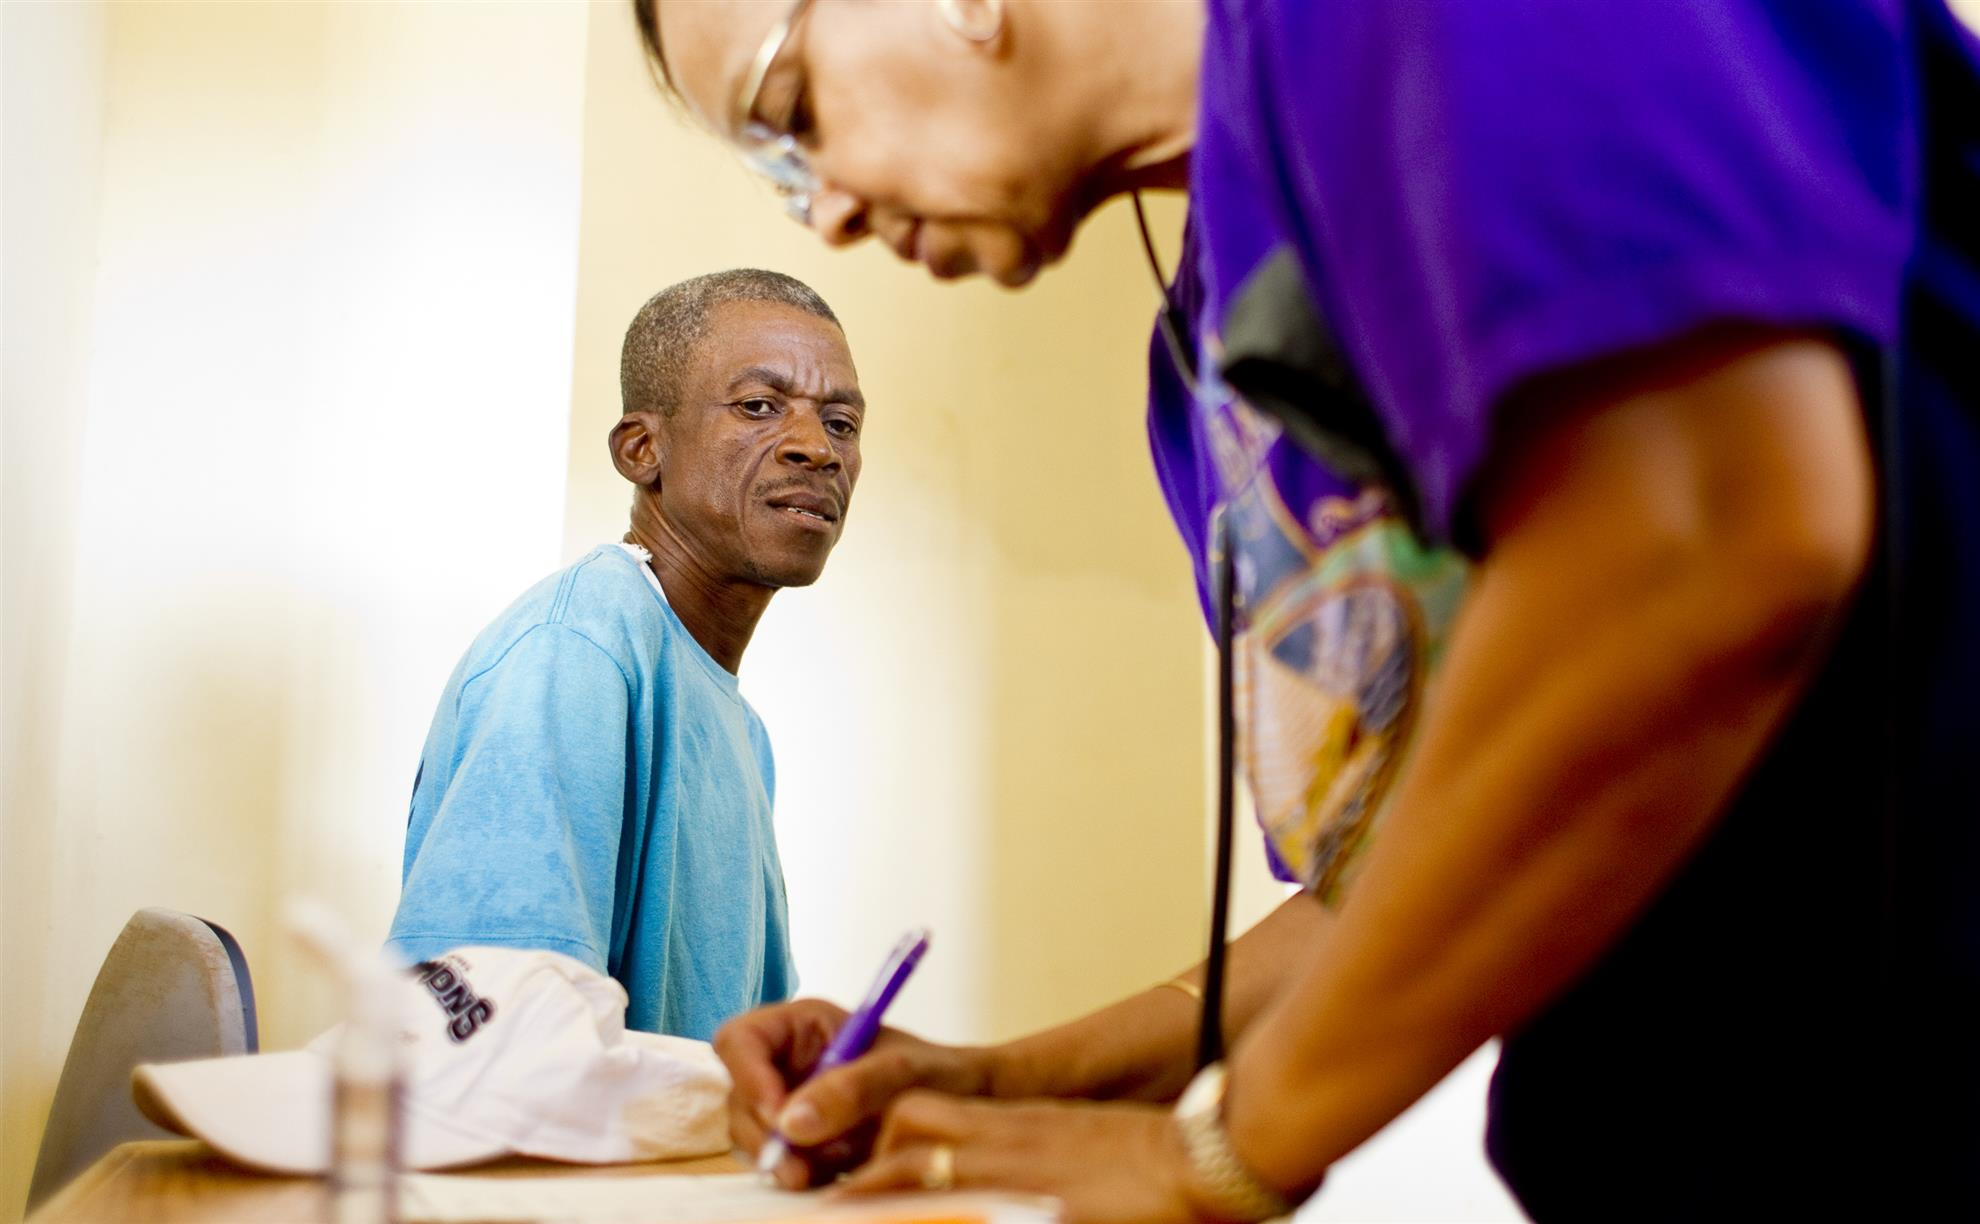 Rotarian Florence Marc-Charles triages a patient at a clinic in Nan Sema, La Gonave, Haiti © Rotary International/Alyce Henson